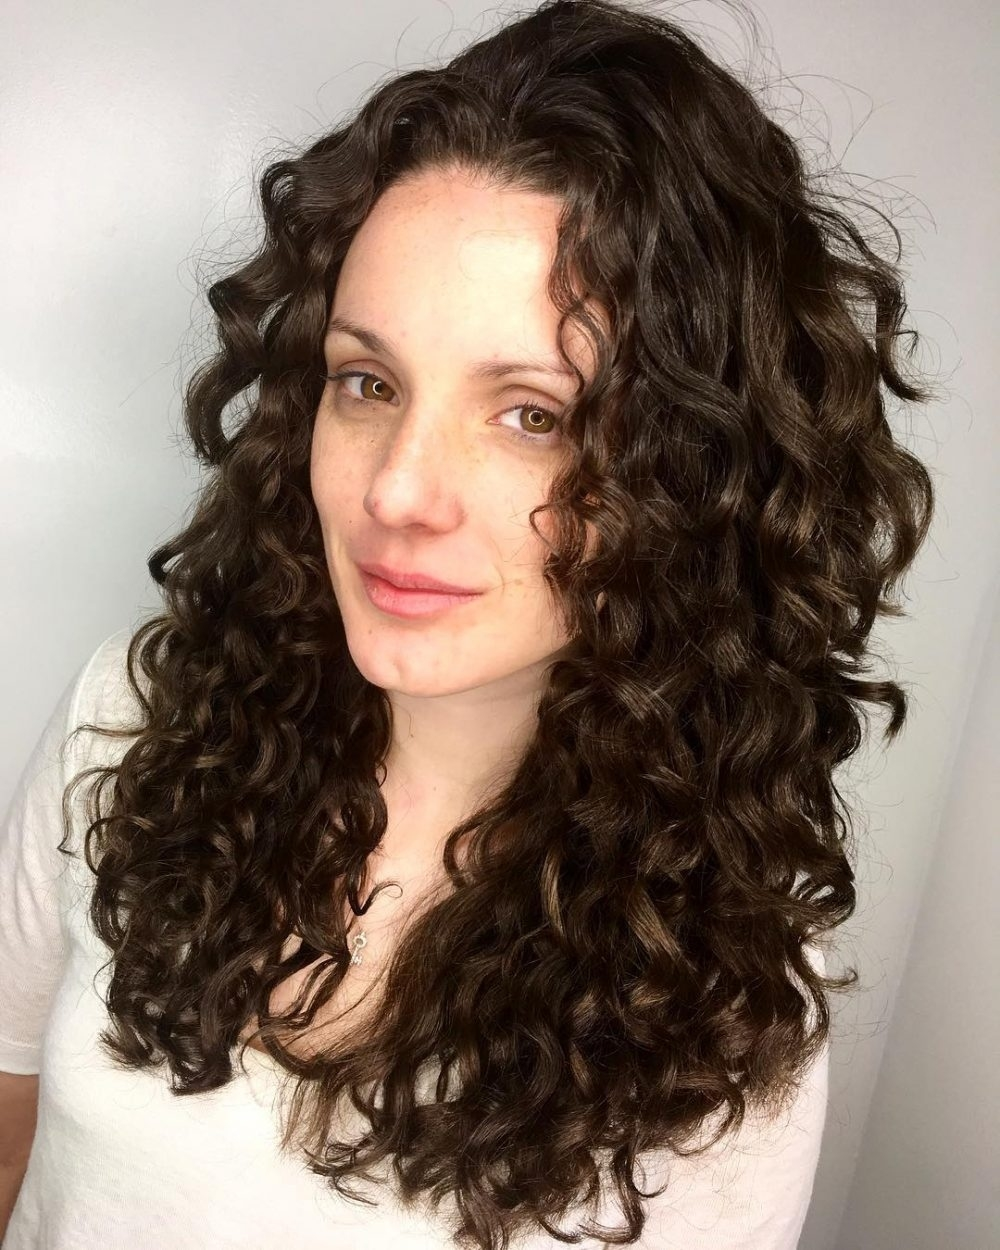 25 Cutest Long Curly Hairstyles For 2018 in Haircut For Curly Hair Long Face